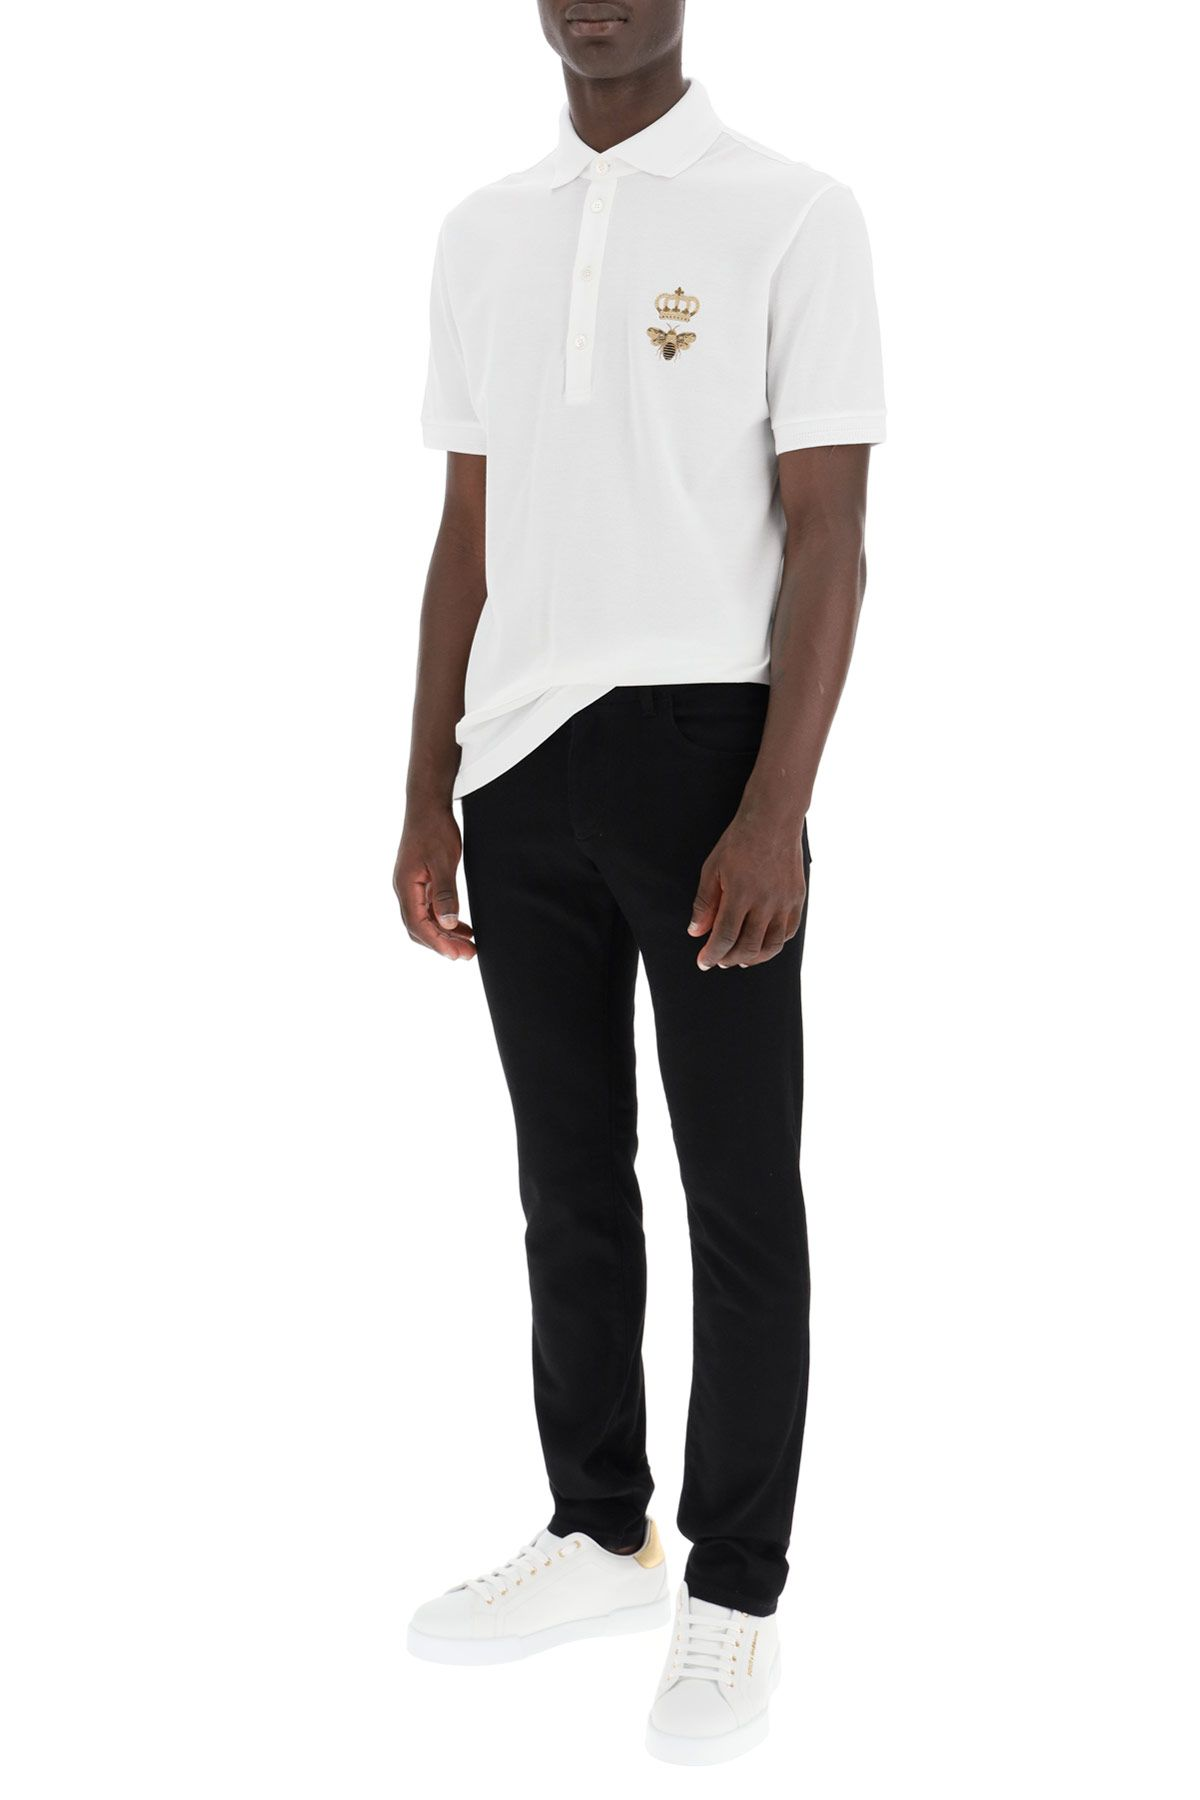 dolce & gabbana clothing men crown and bee polo shirt